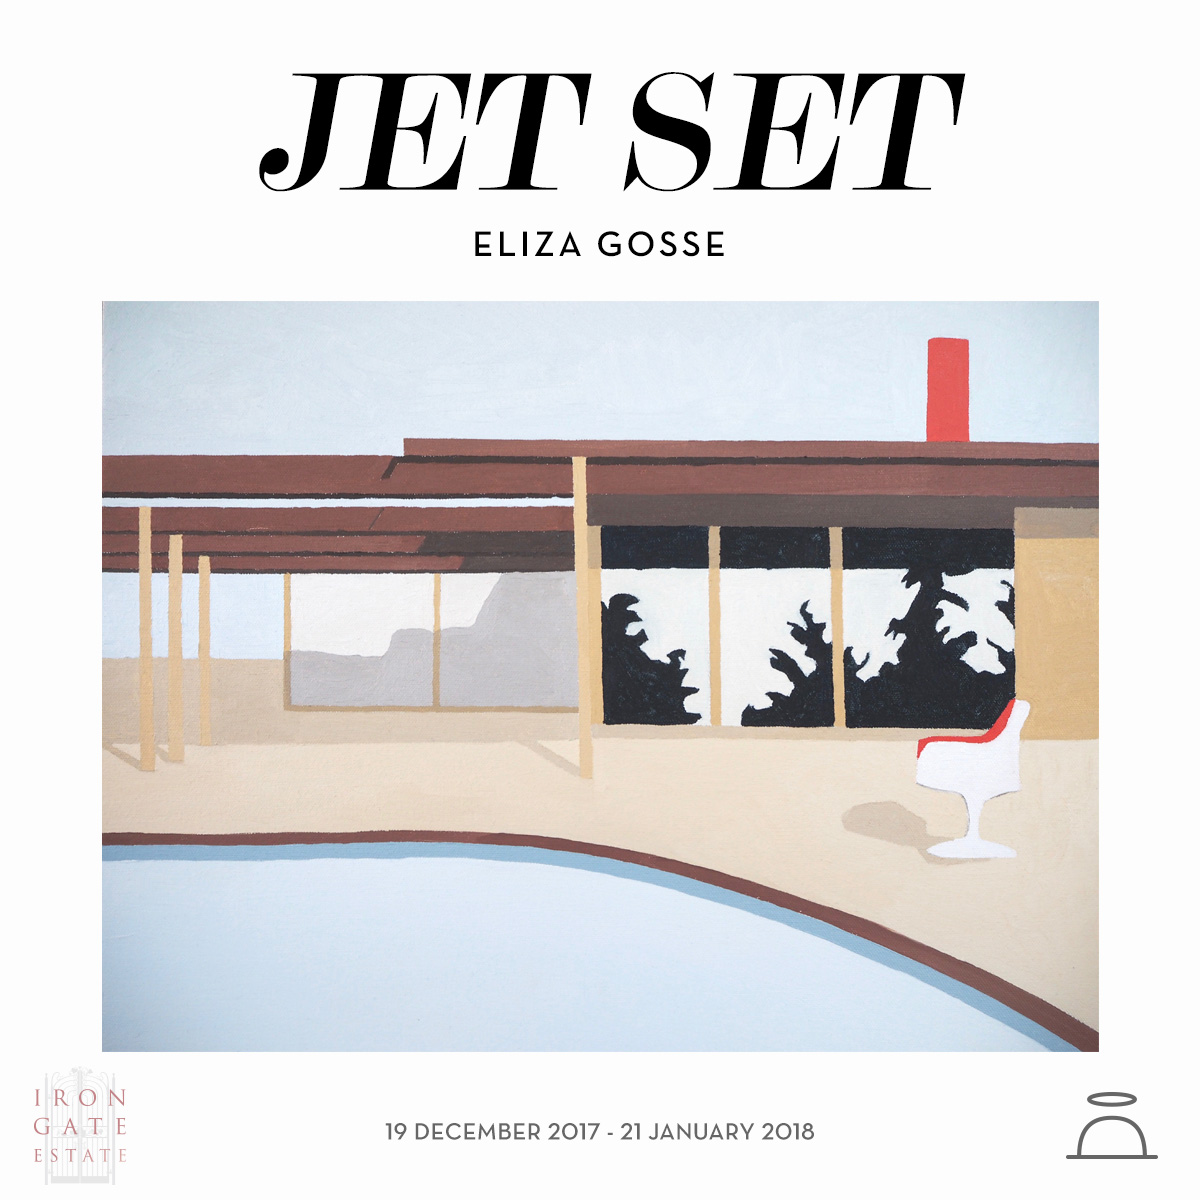 Jet Set - Group Show